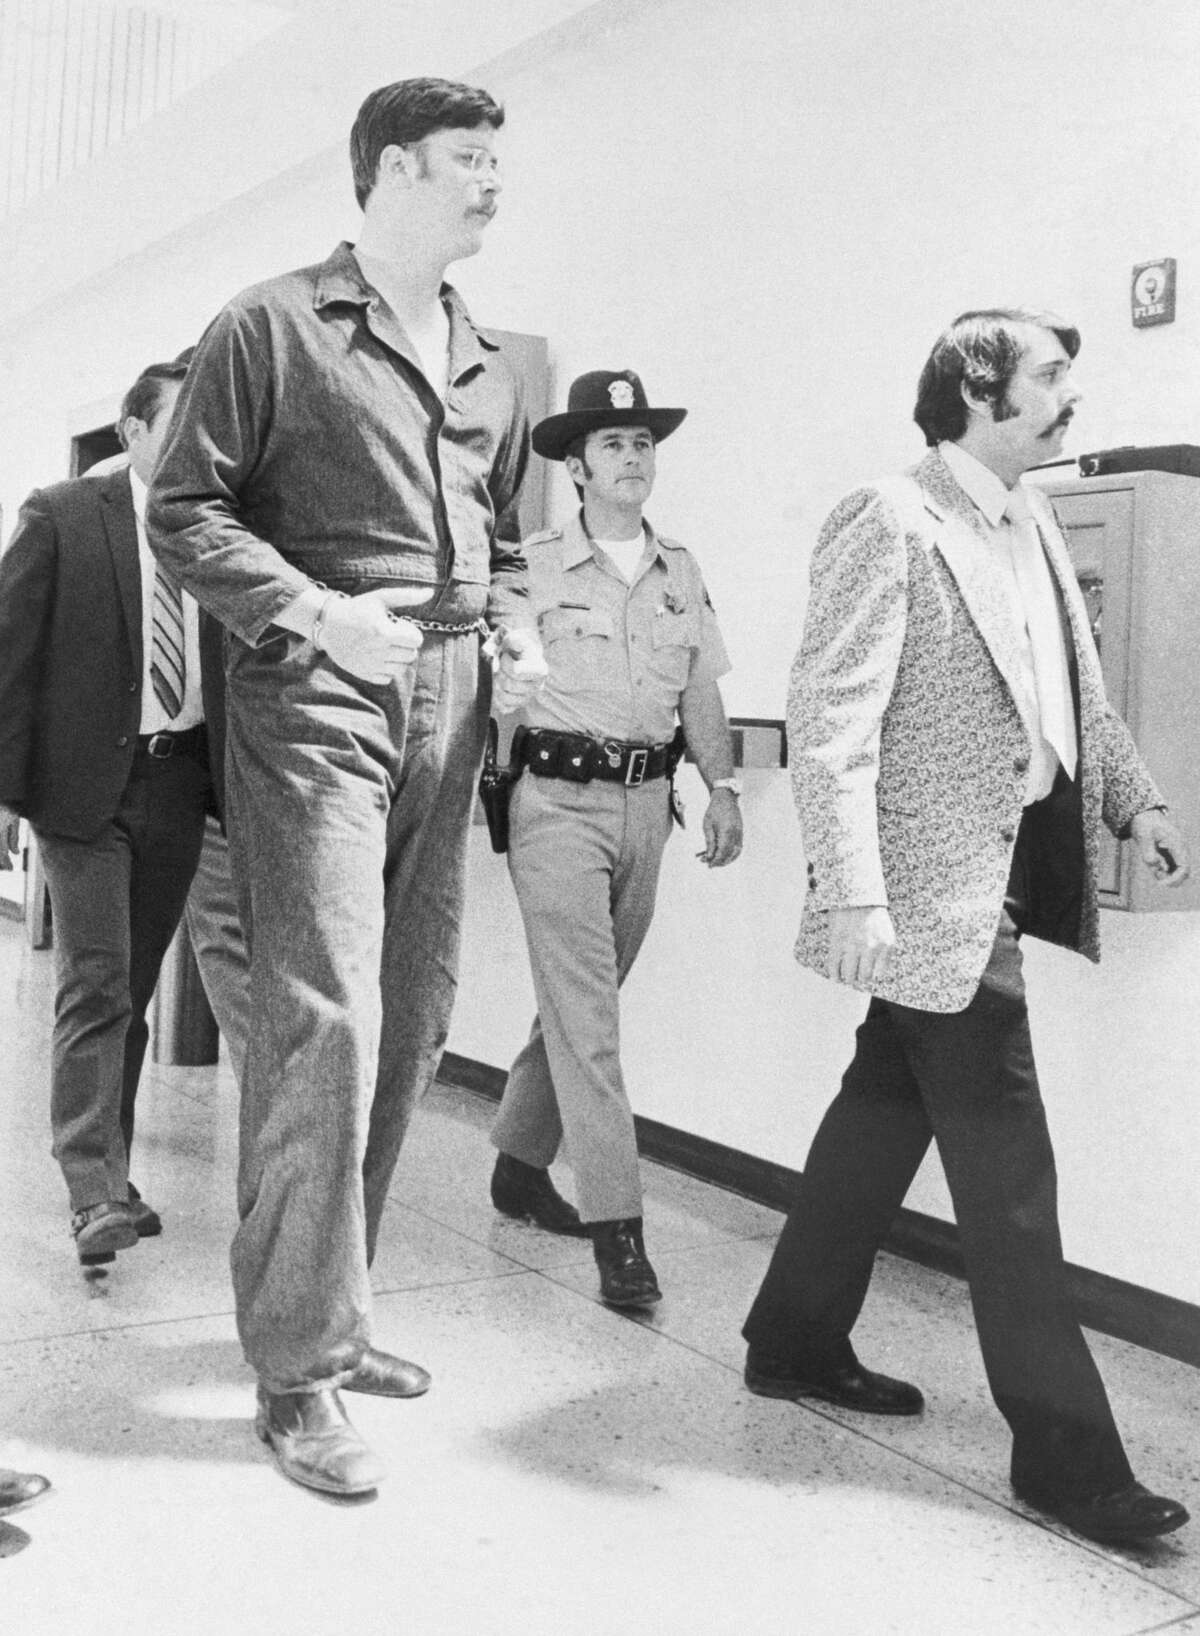 Edmund Kemper, 6-foot-9, towers over police officers as he's taken into custody.